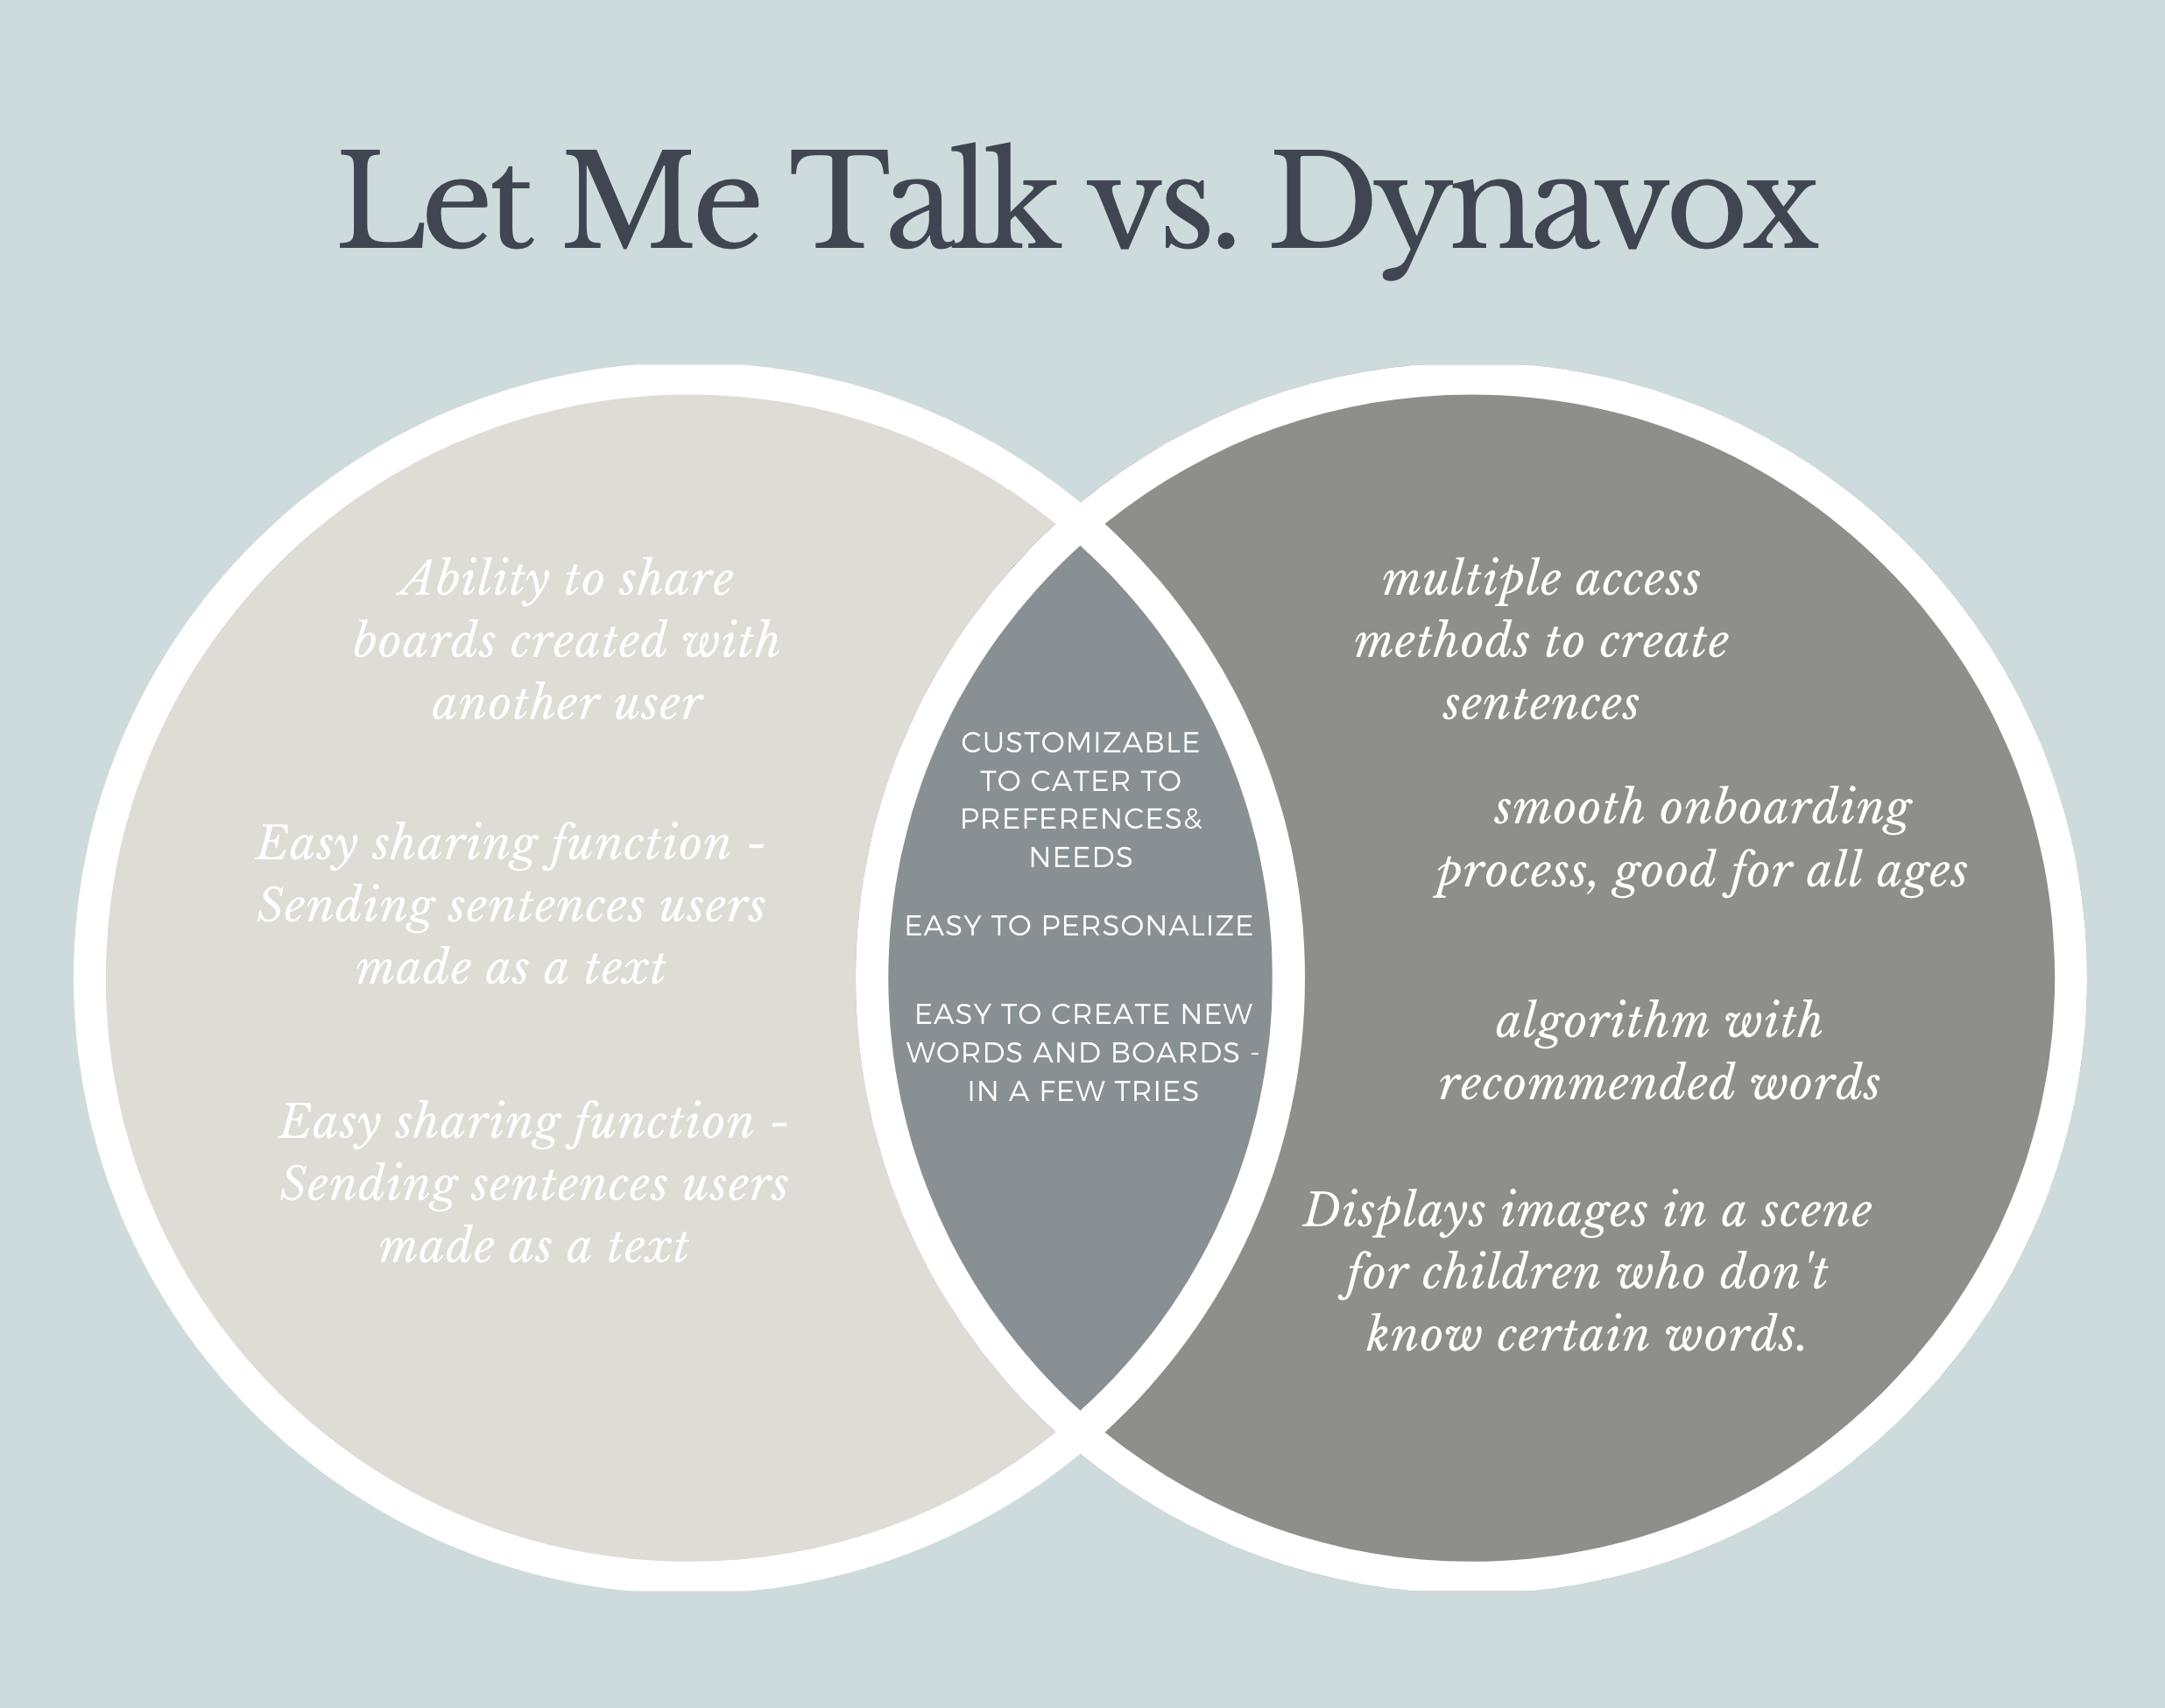 Venn Diagram comparing LetMe Talk (left) and Dynavox (right), as well as some overlapping features.